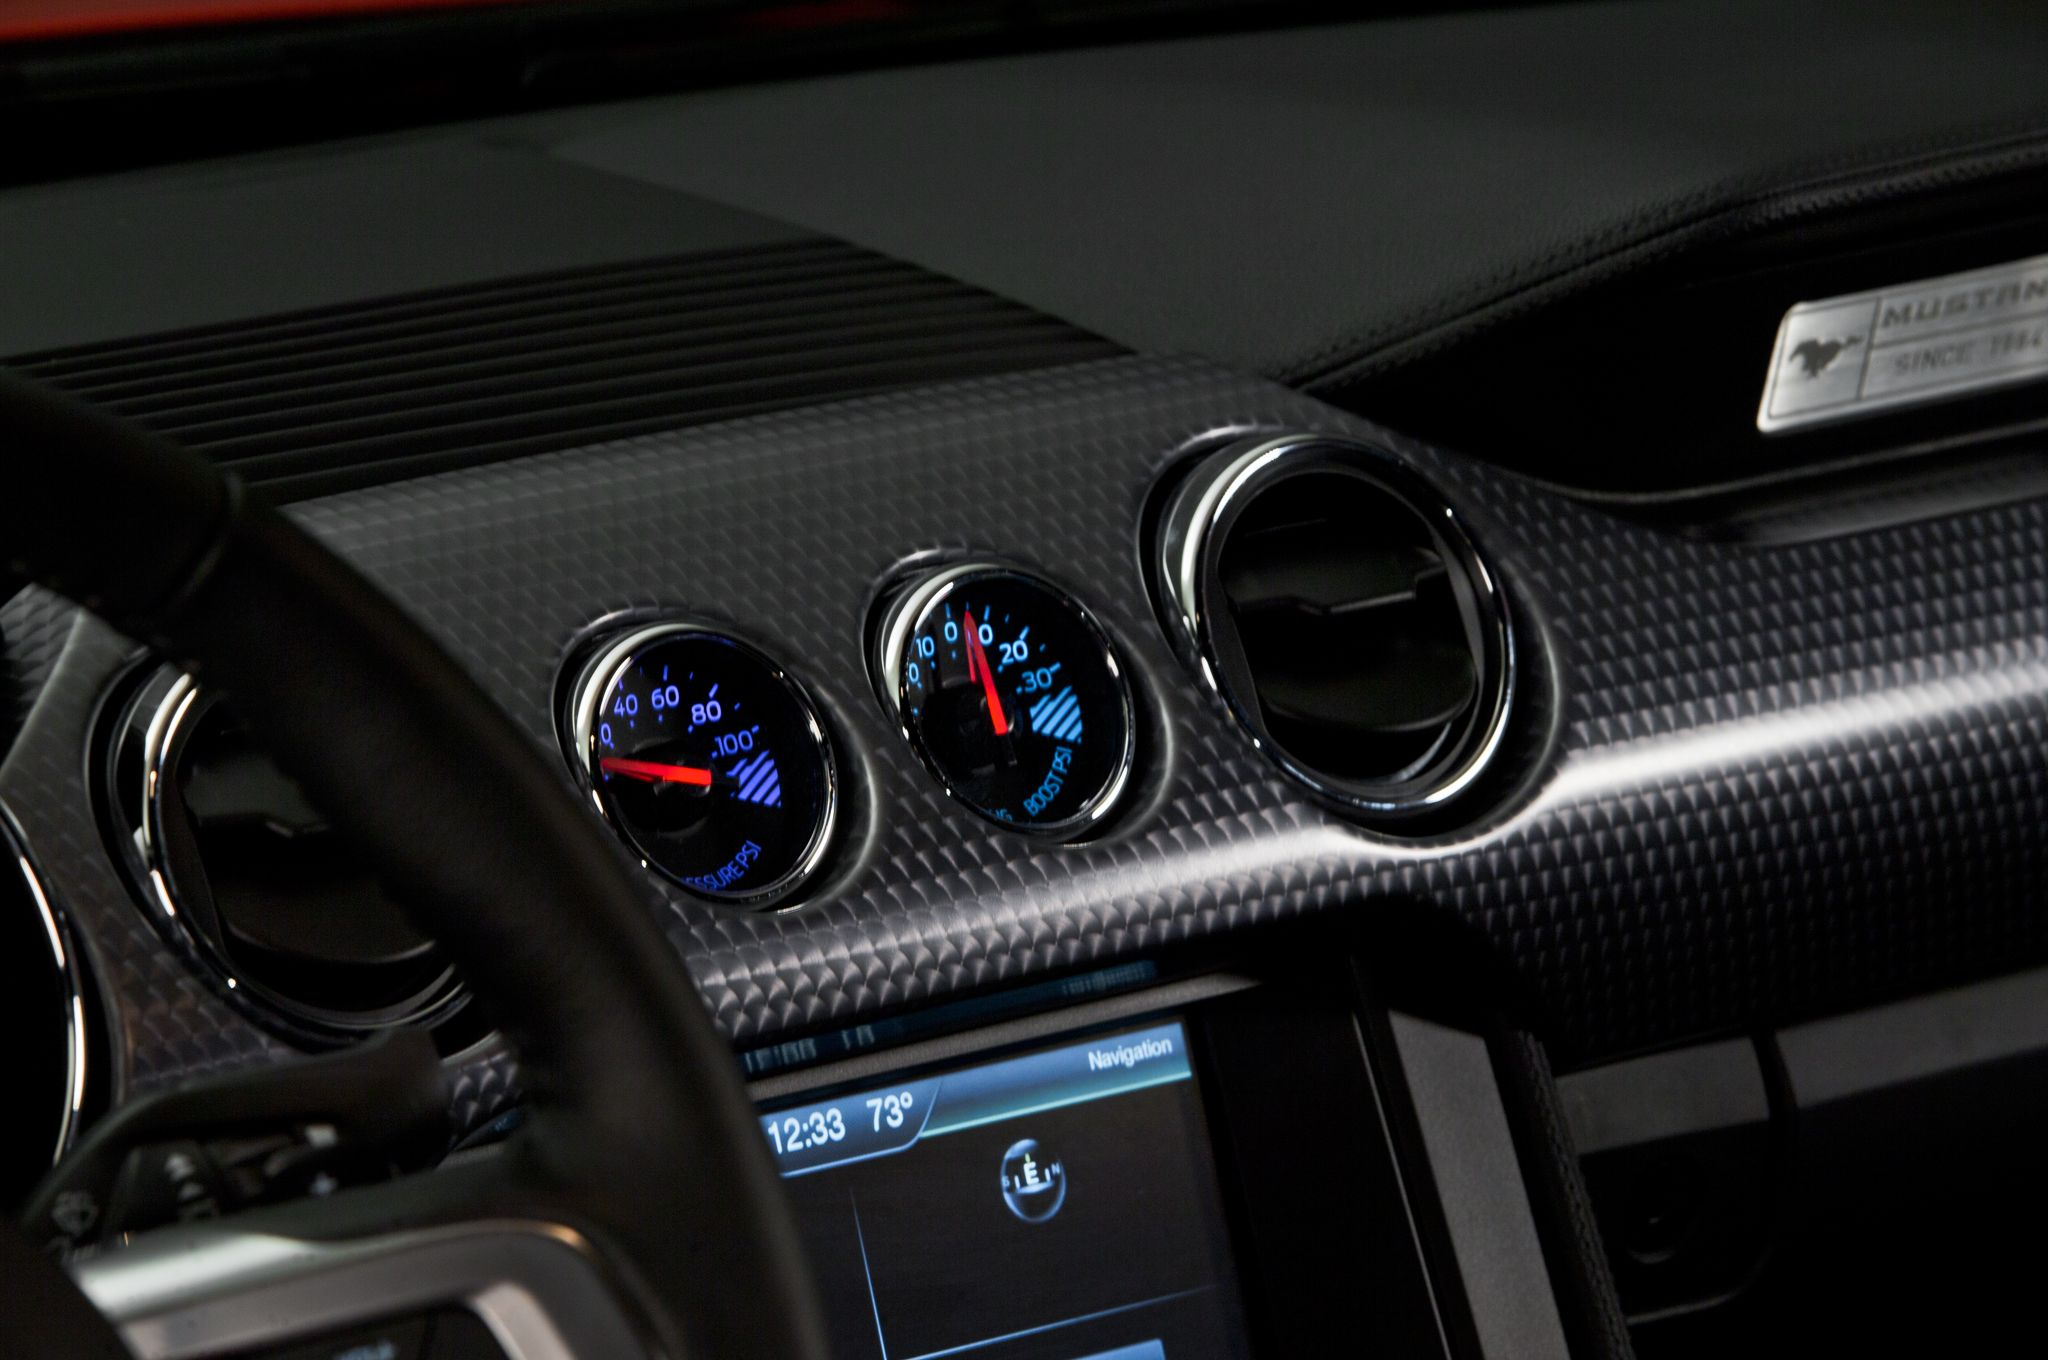 2015 ford mustang 50 red interior detail boost gauges - Ford Gt40 2015 Interior